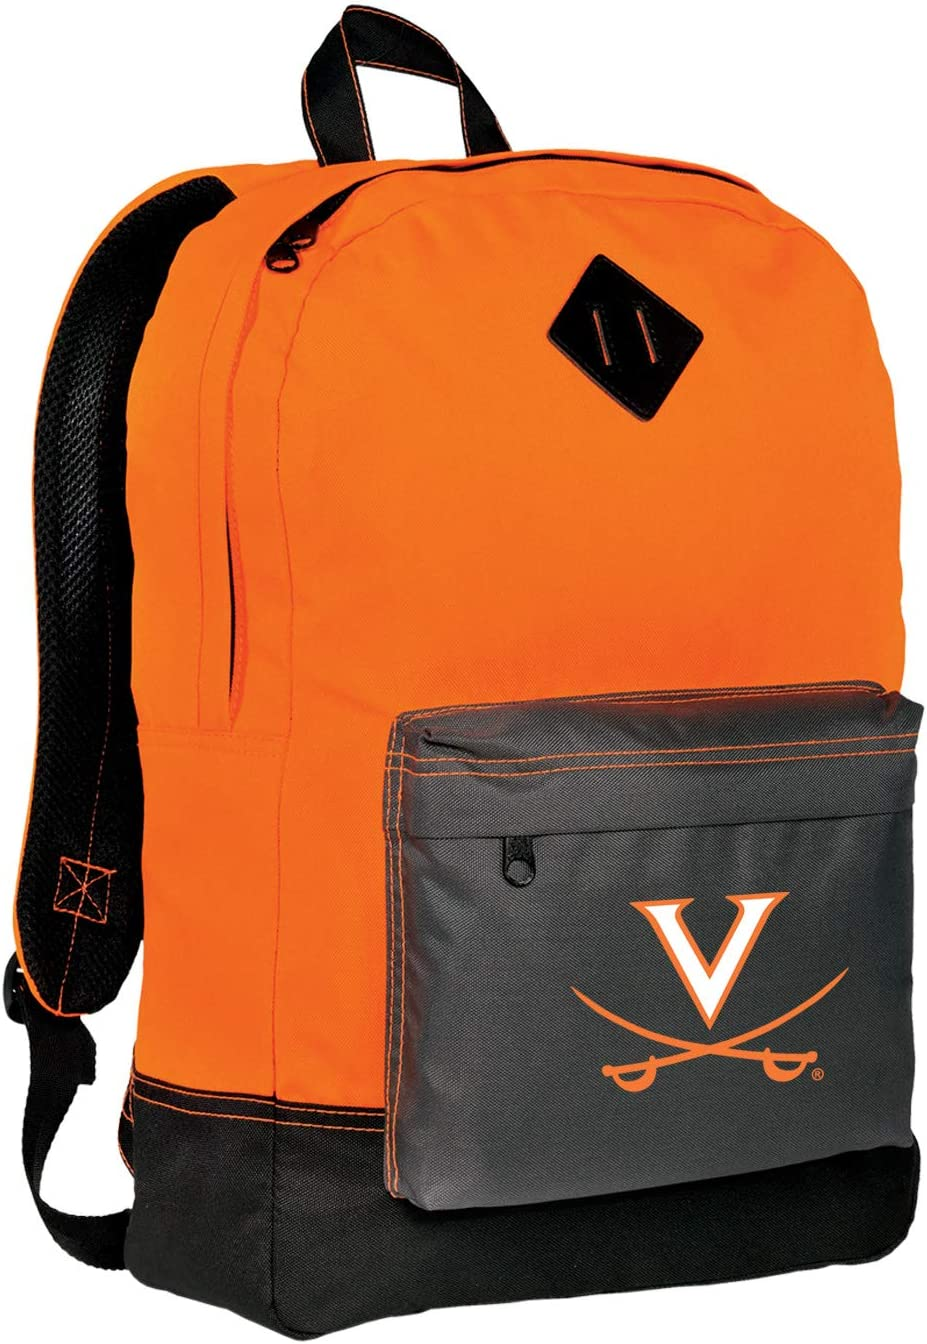 Discount is also underway UVA Backpack CLASSIC STYLE University of Backpacks Virginia New popularity High